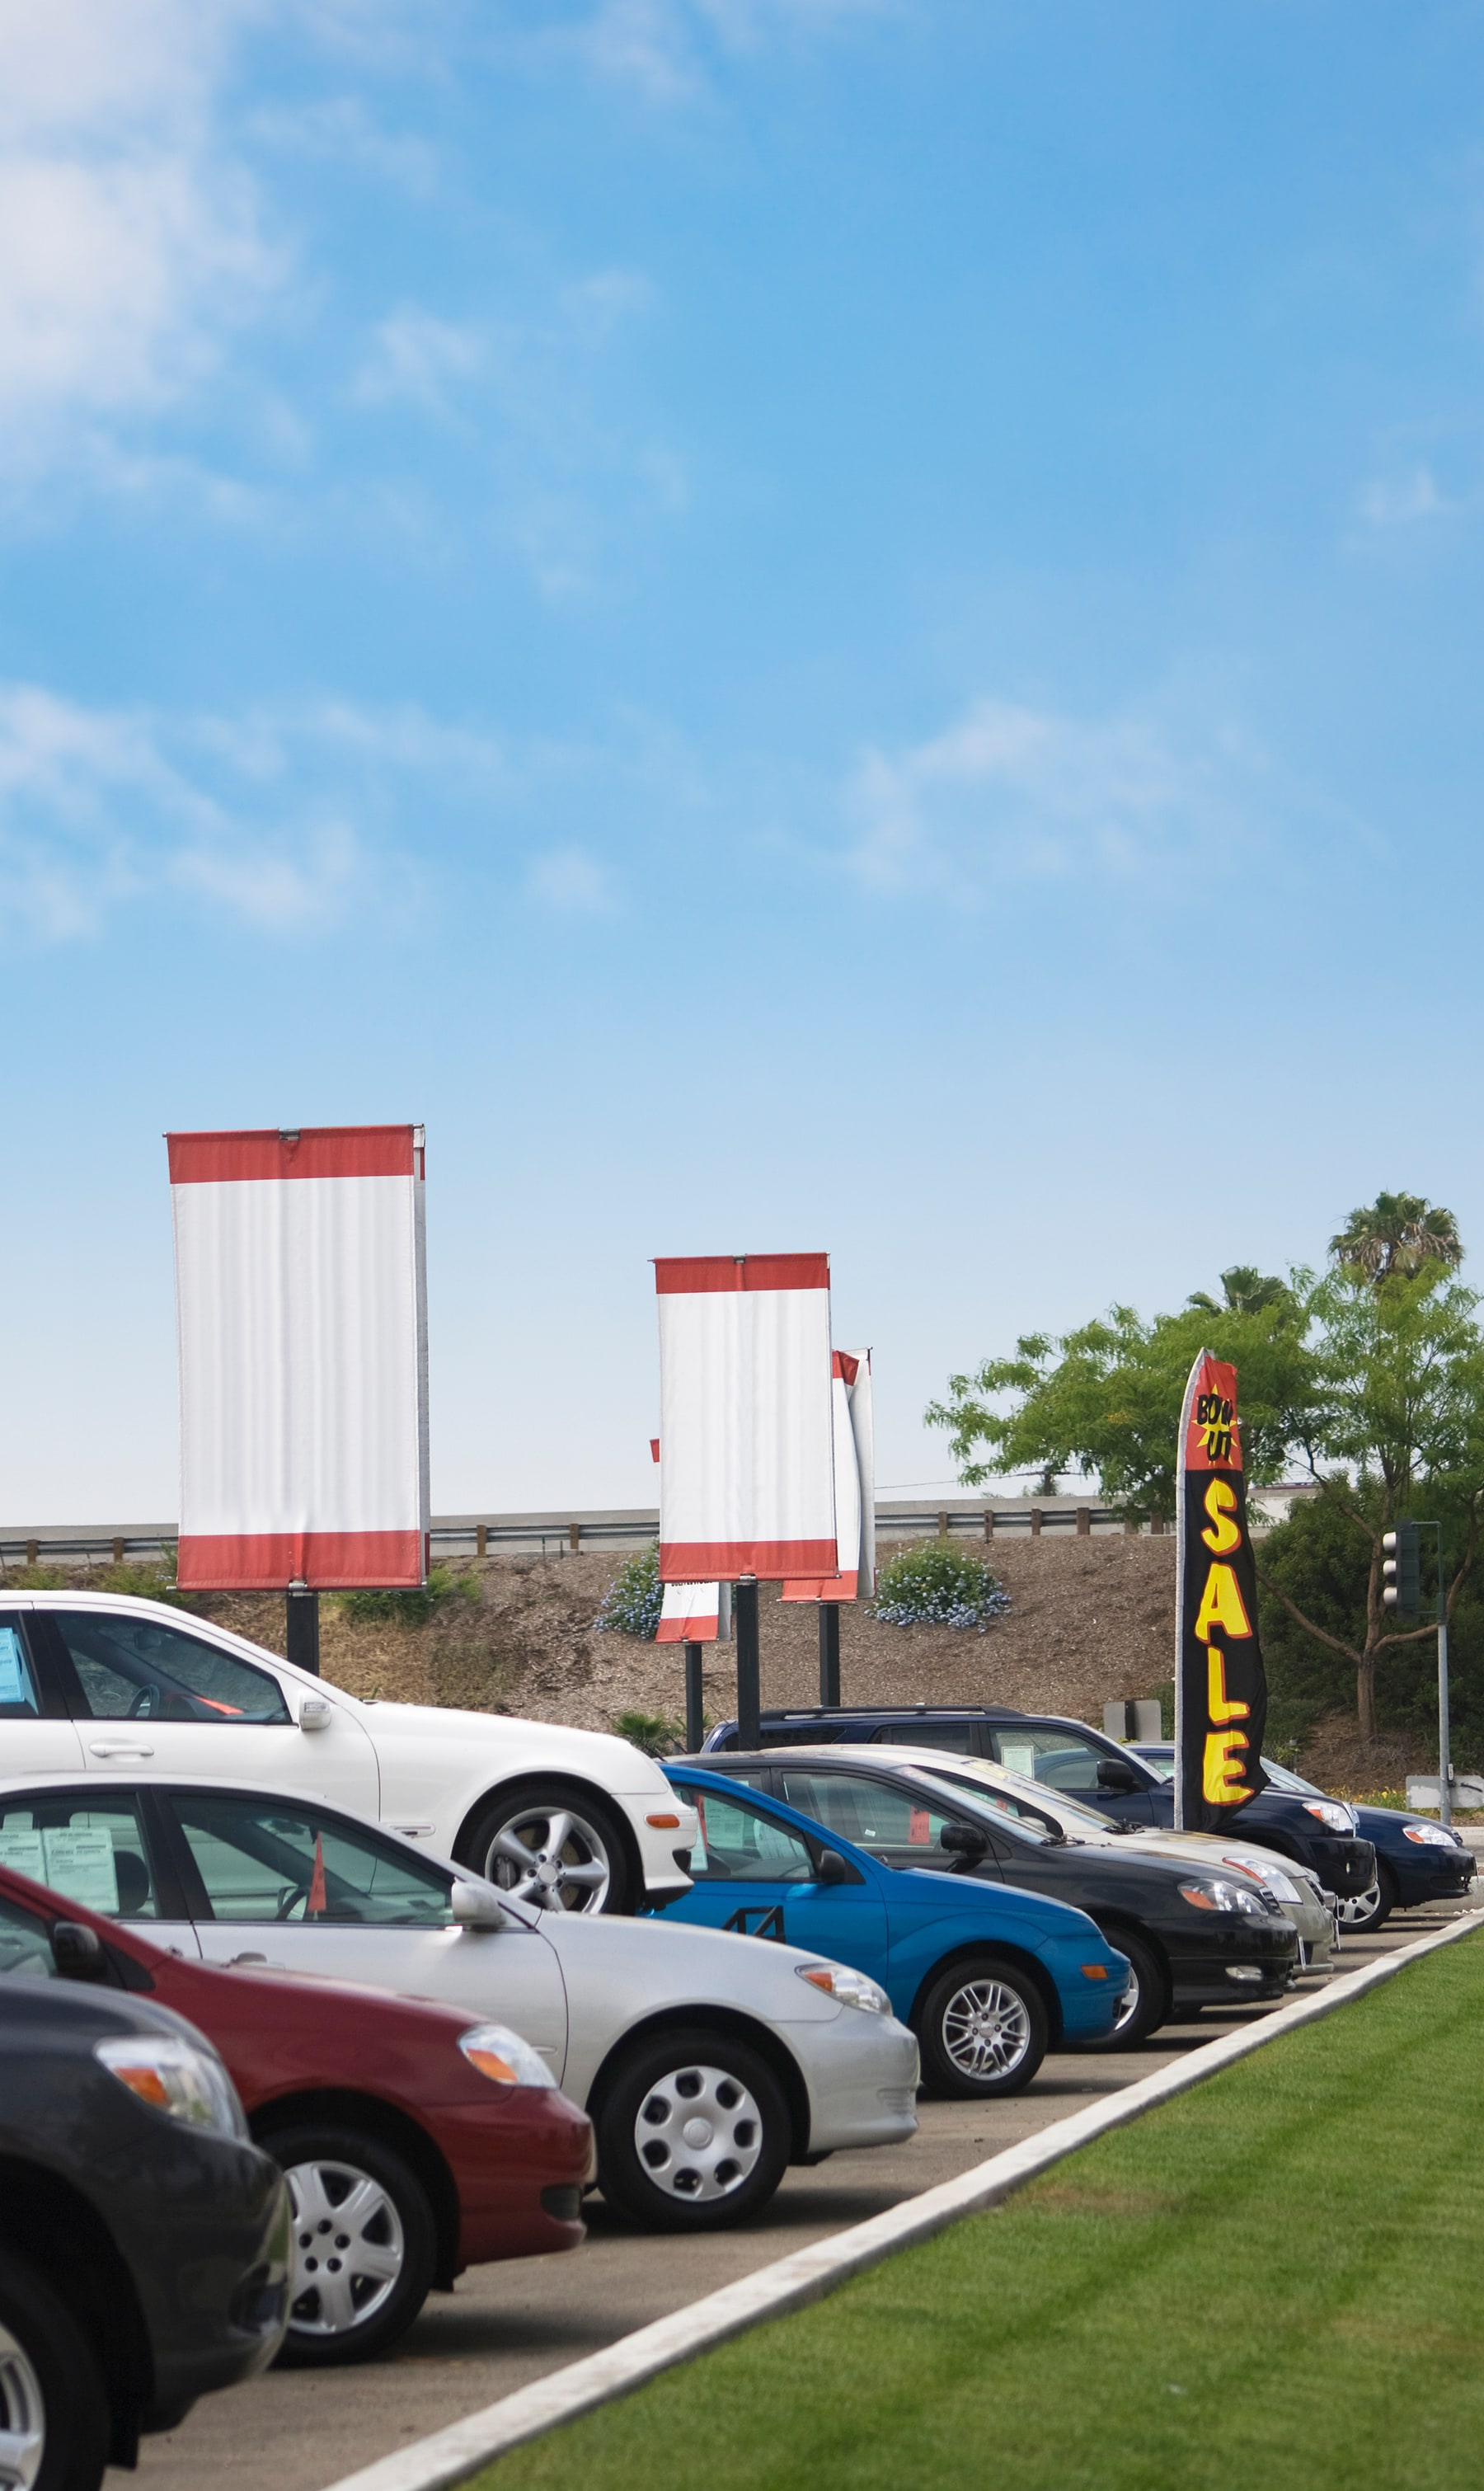 used vehicle lineup in a used car dealership